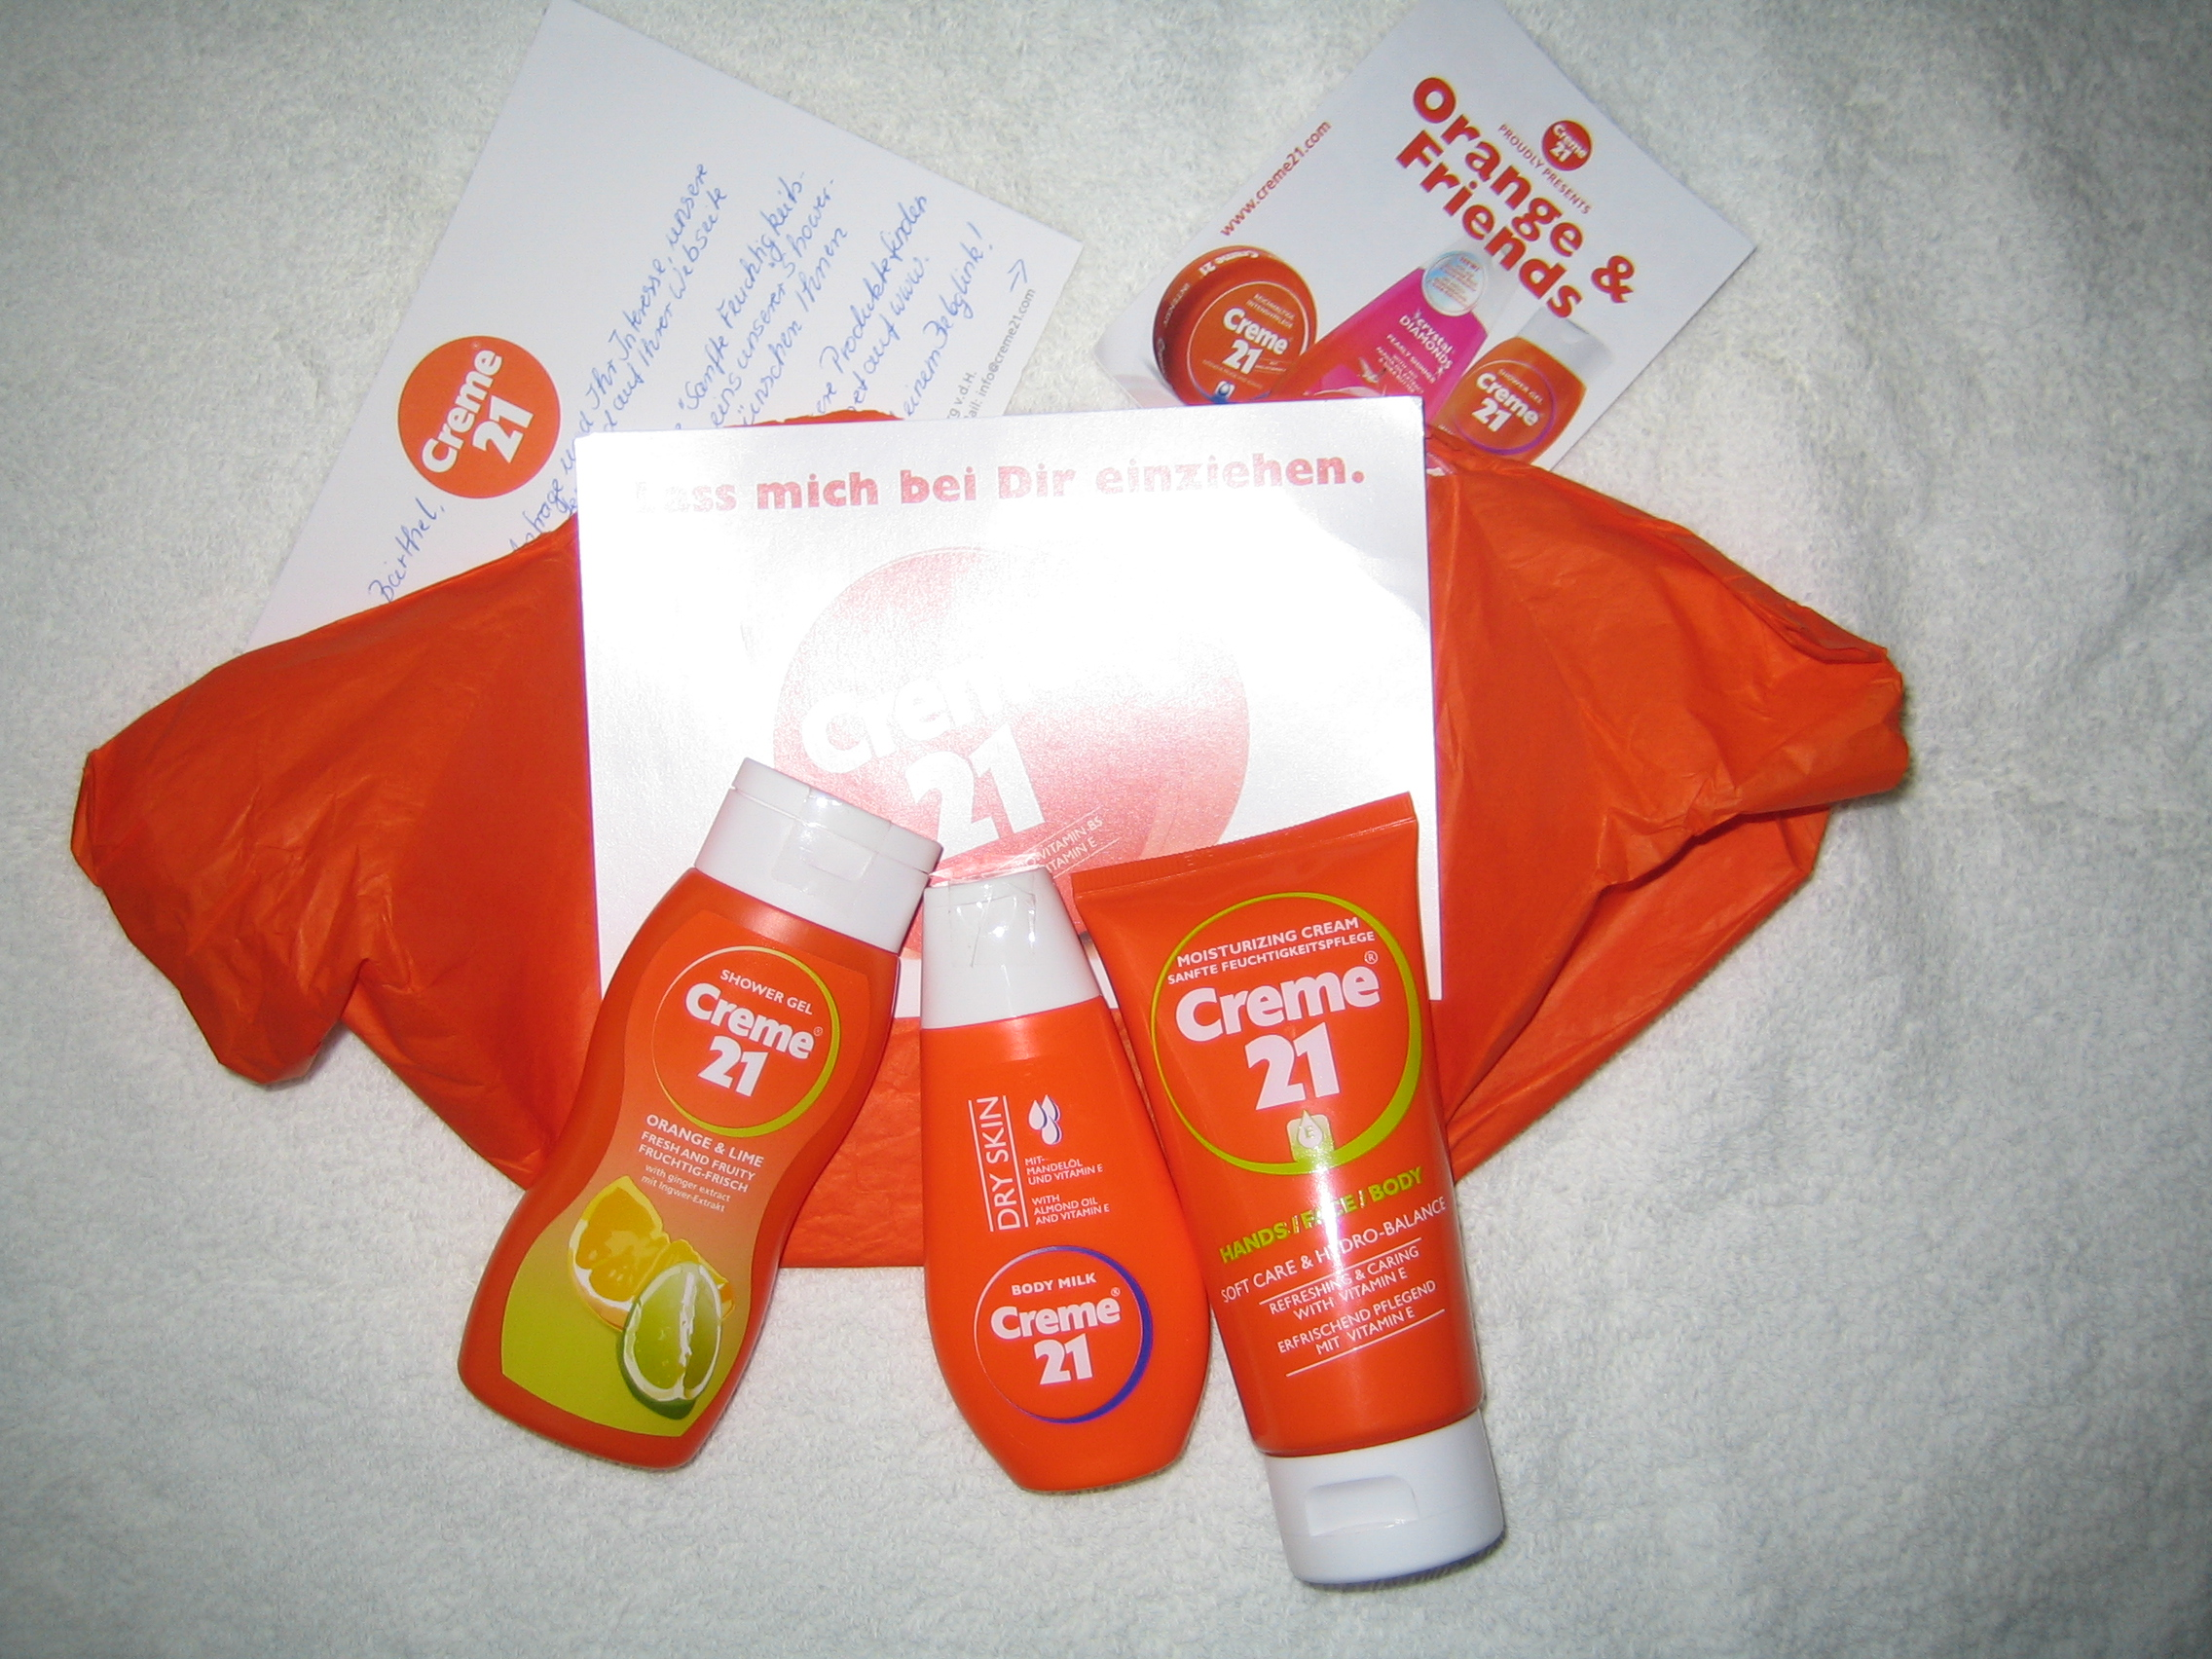 Produkttest Creme 21 Shower Gel,  Body Milk und Handcreme